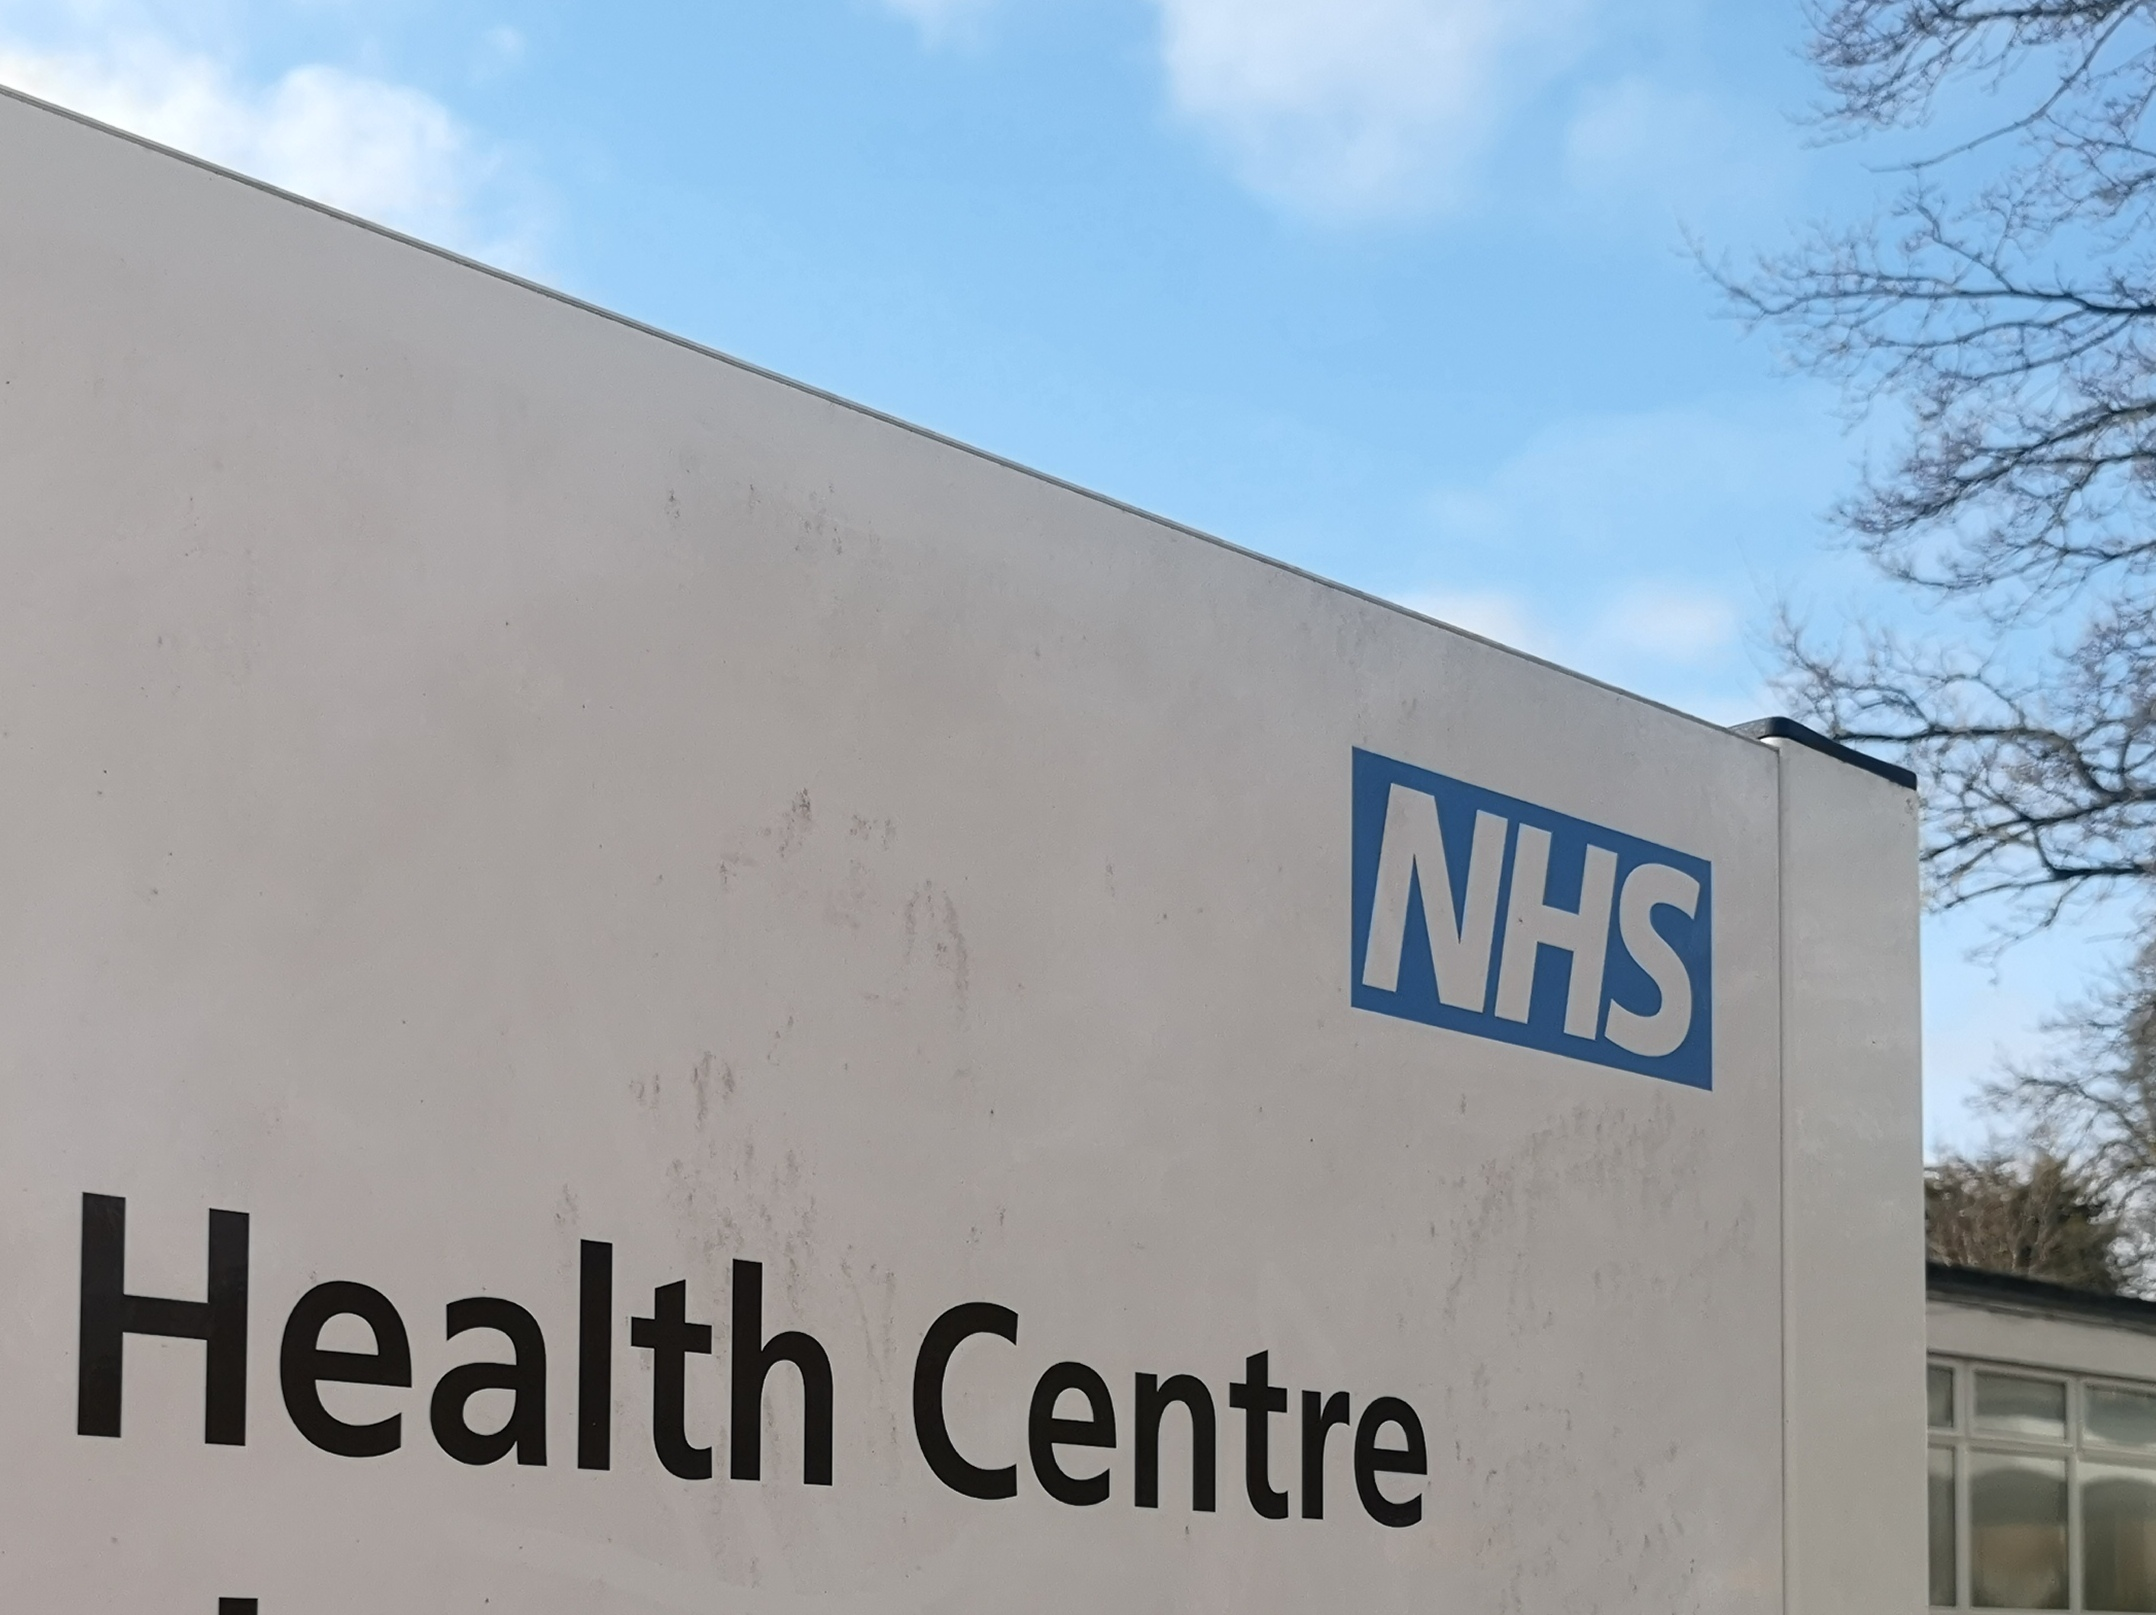 Doctors' surgeries will offer bank holiday appointments over Easter weekend